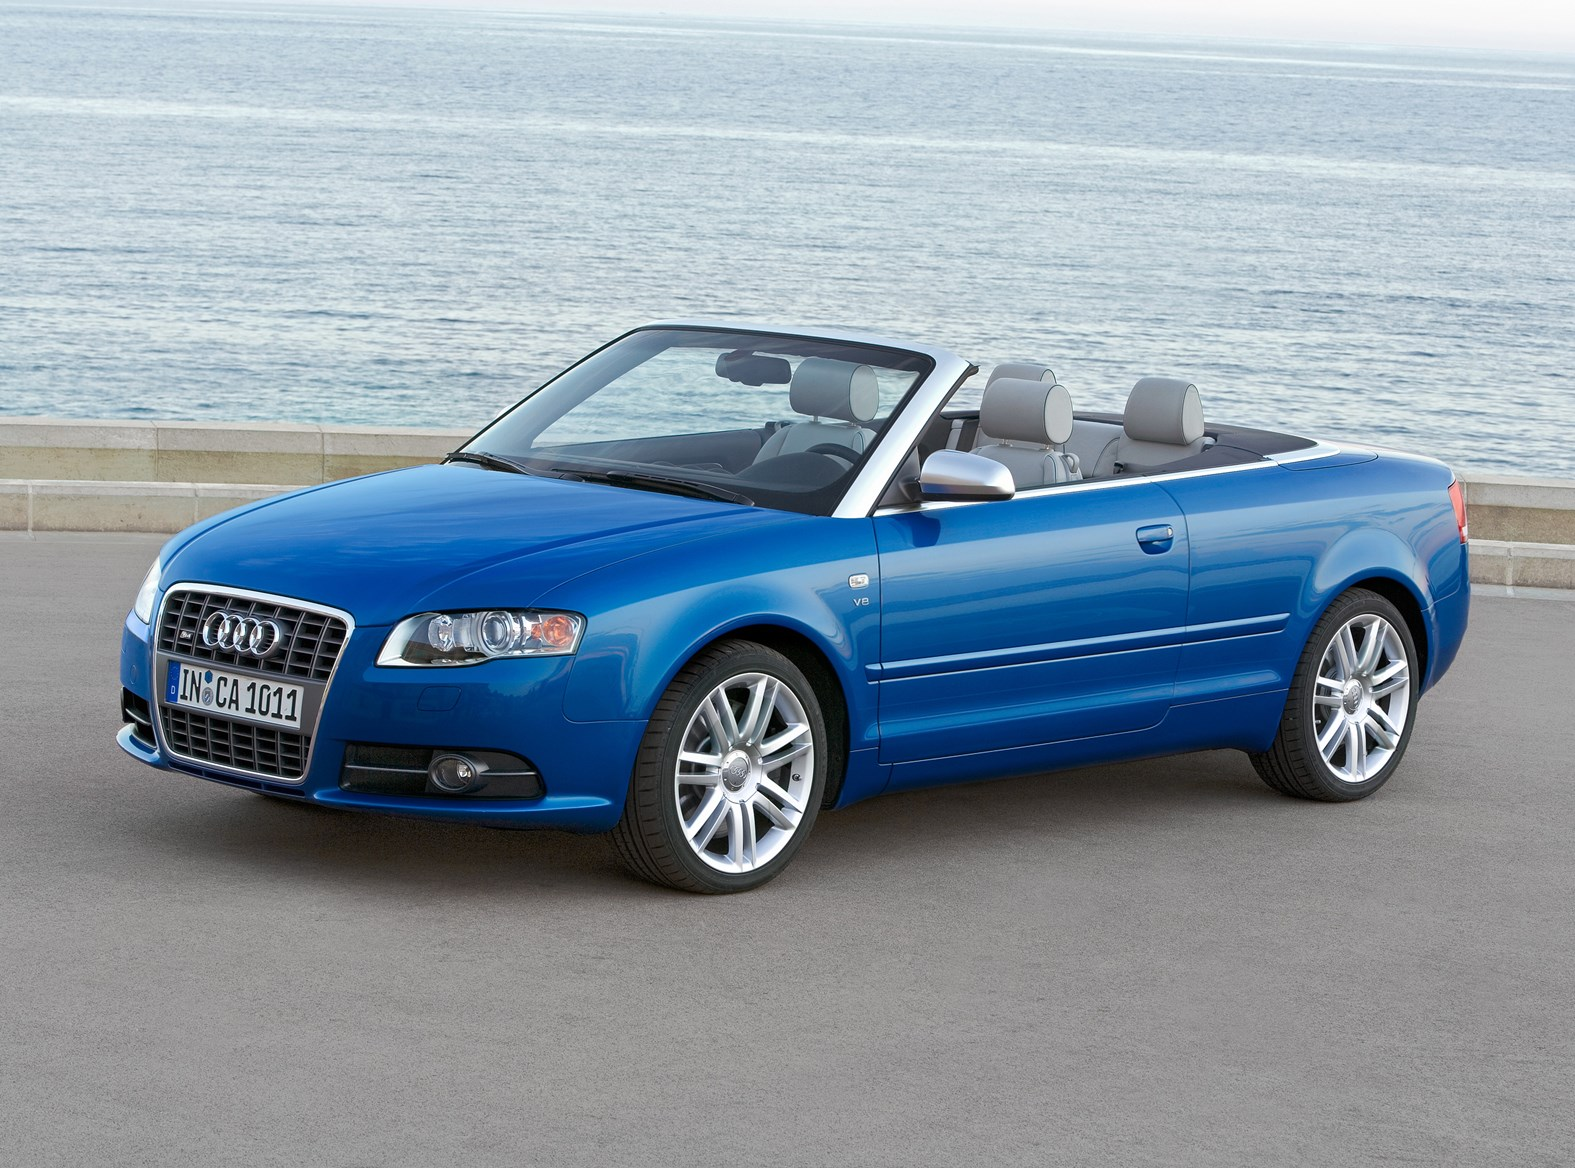 audi a4 cabriolet review 2006 2009 parkers. Black Bedroom Furniture Sets. Home Design Ideas